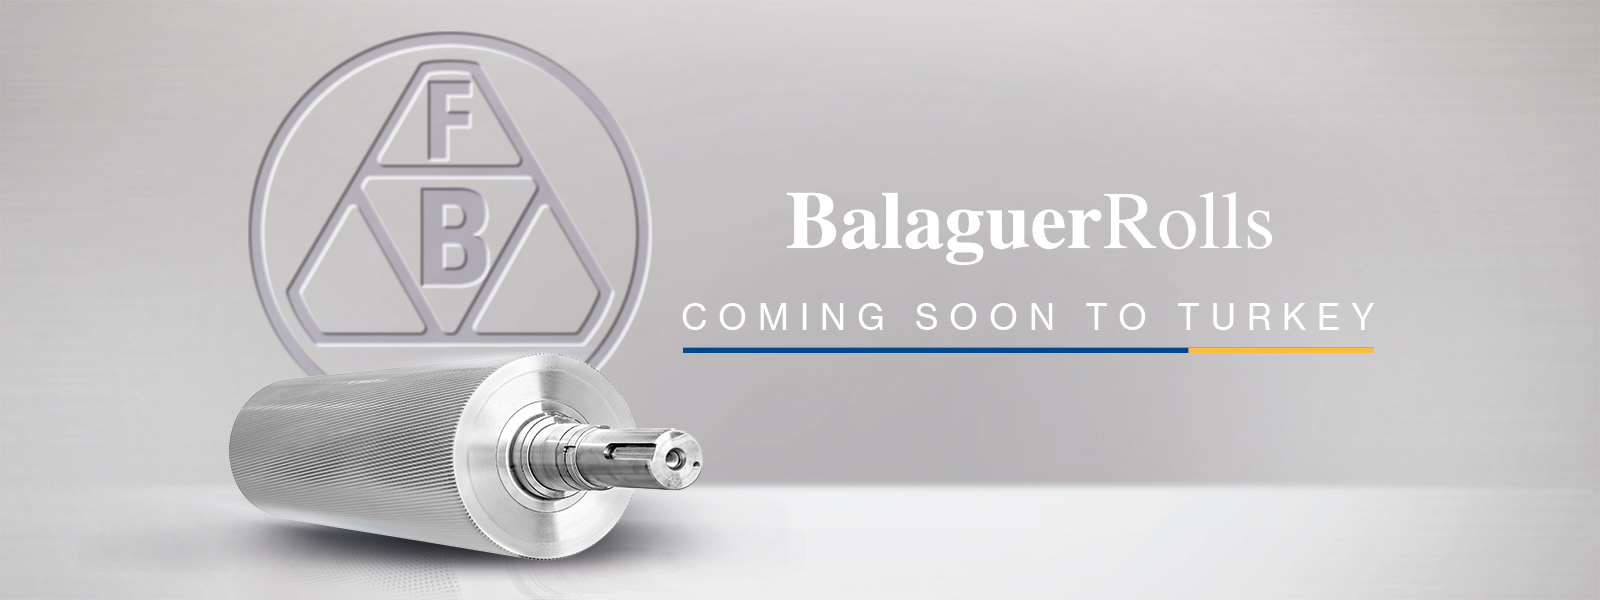 Balaguer Rolls coming soon to Turkey - High quality centrifugally